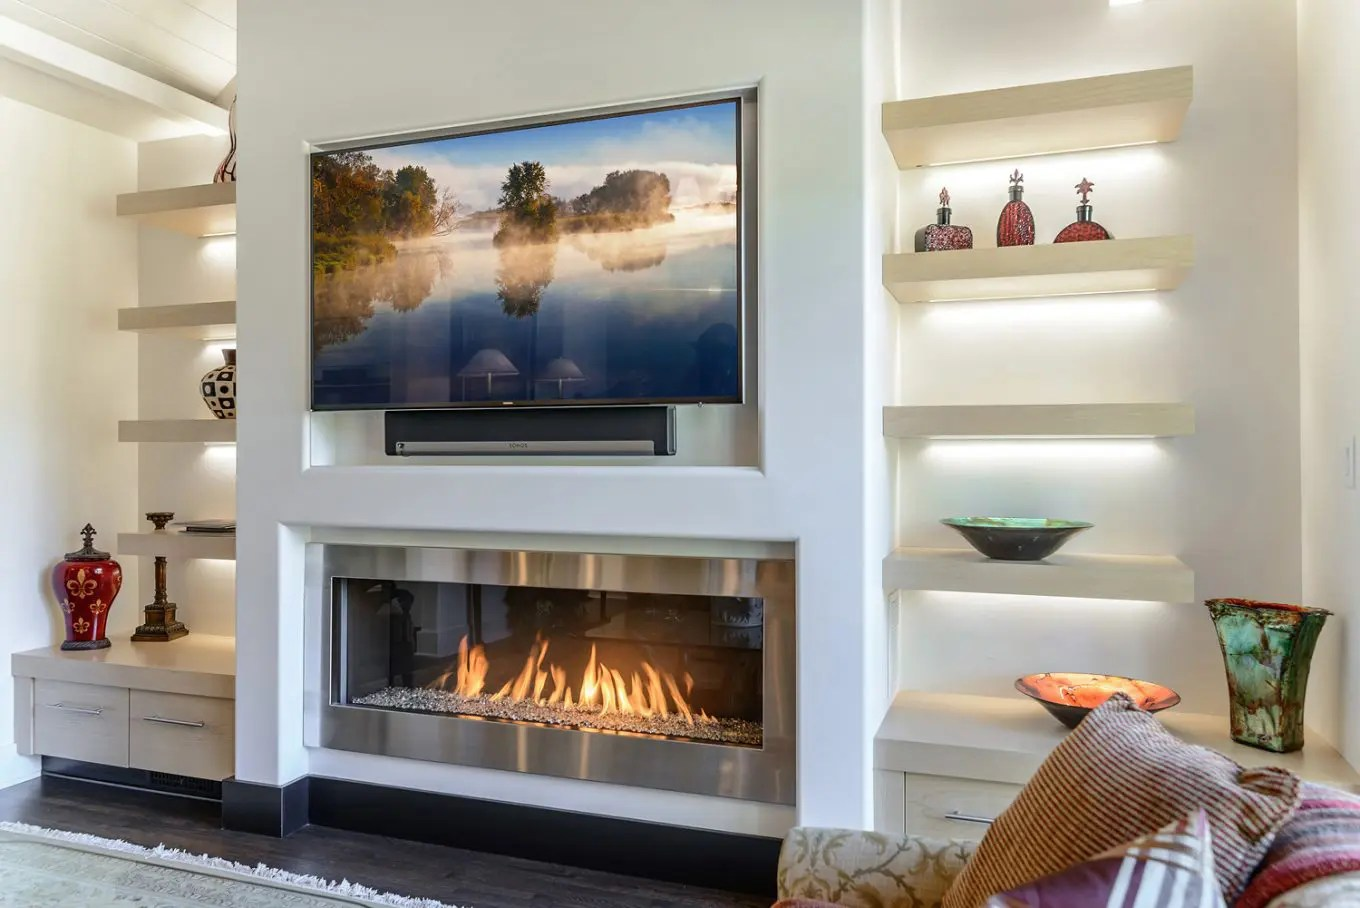 Ask The Experts Should You Install A Tv Over A Fireplace